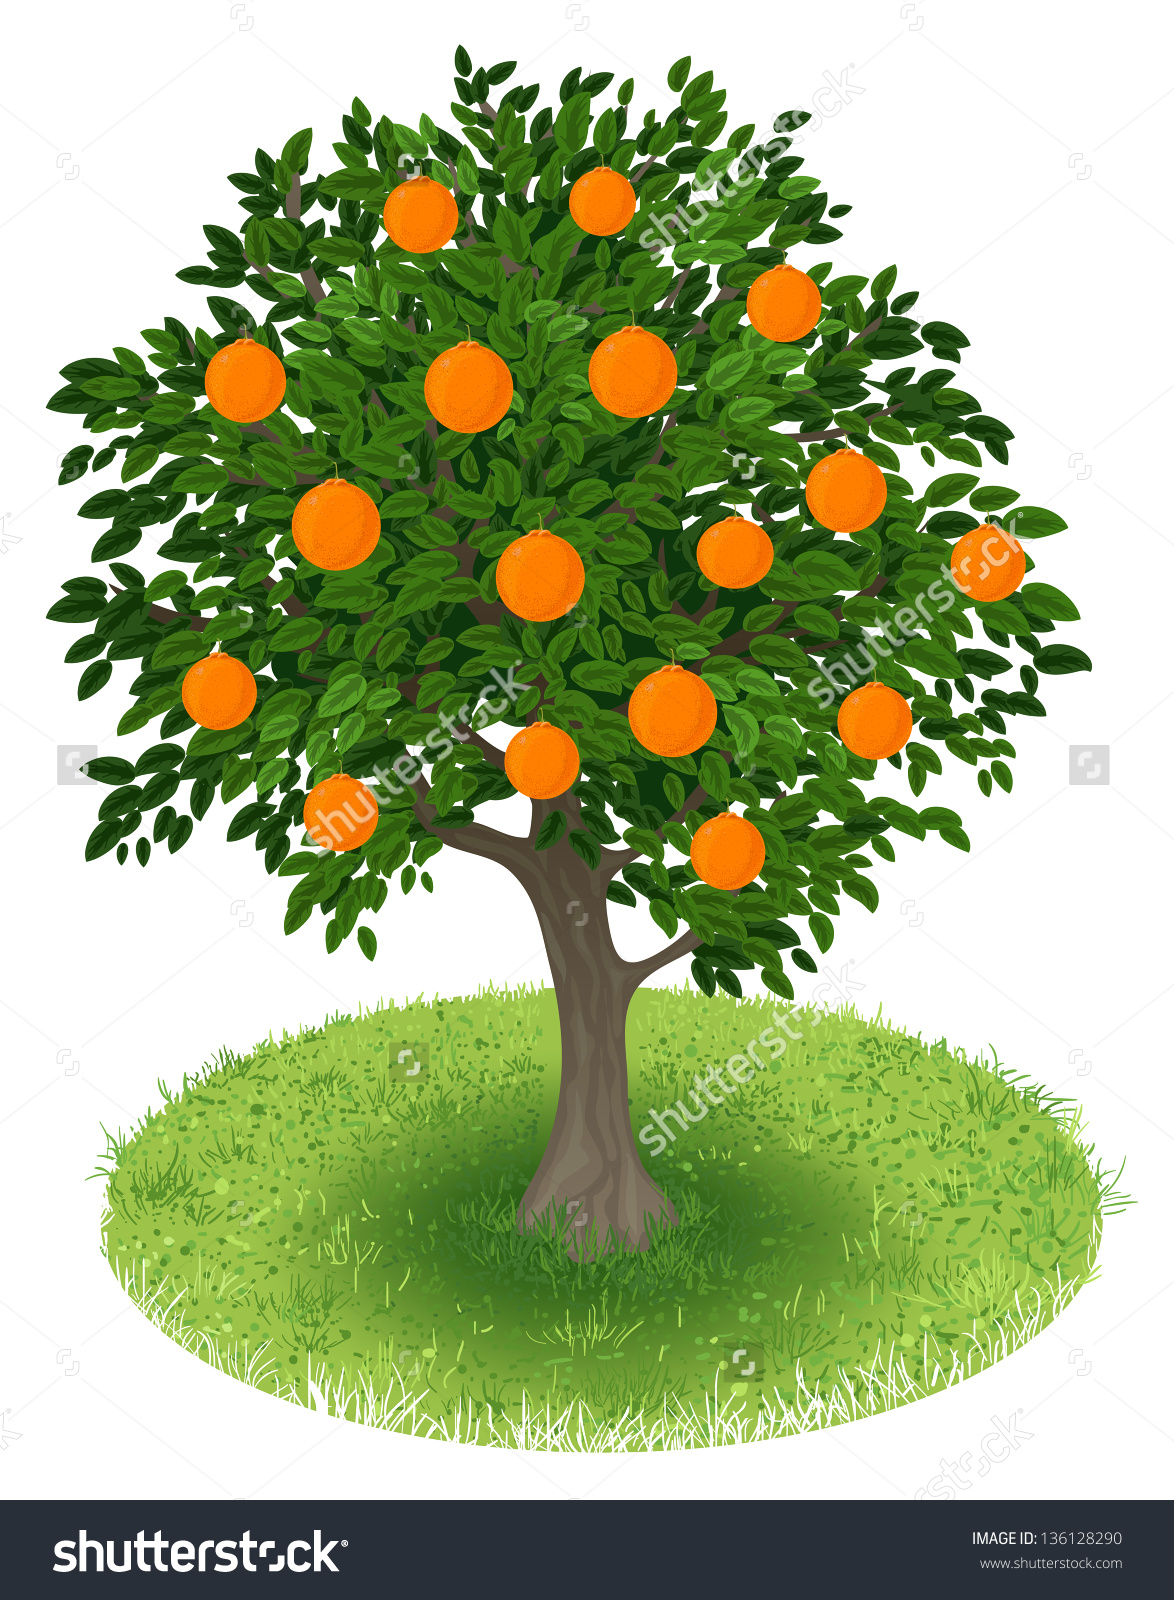 Clipart orange tree.